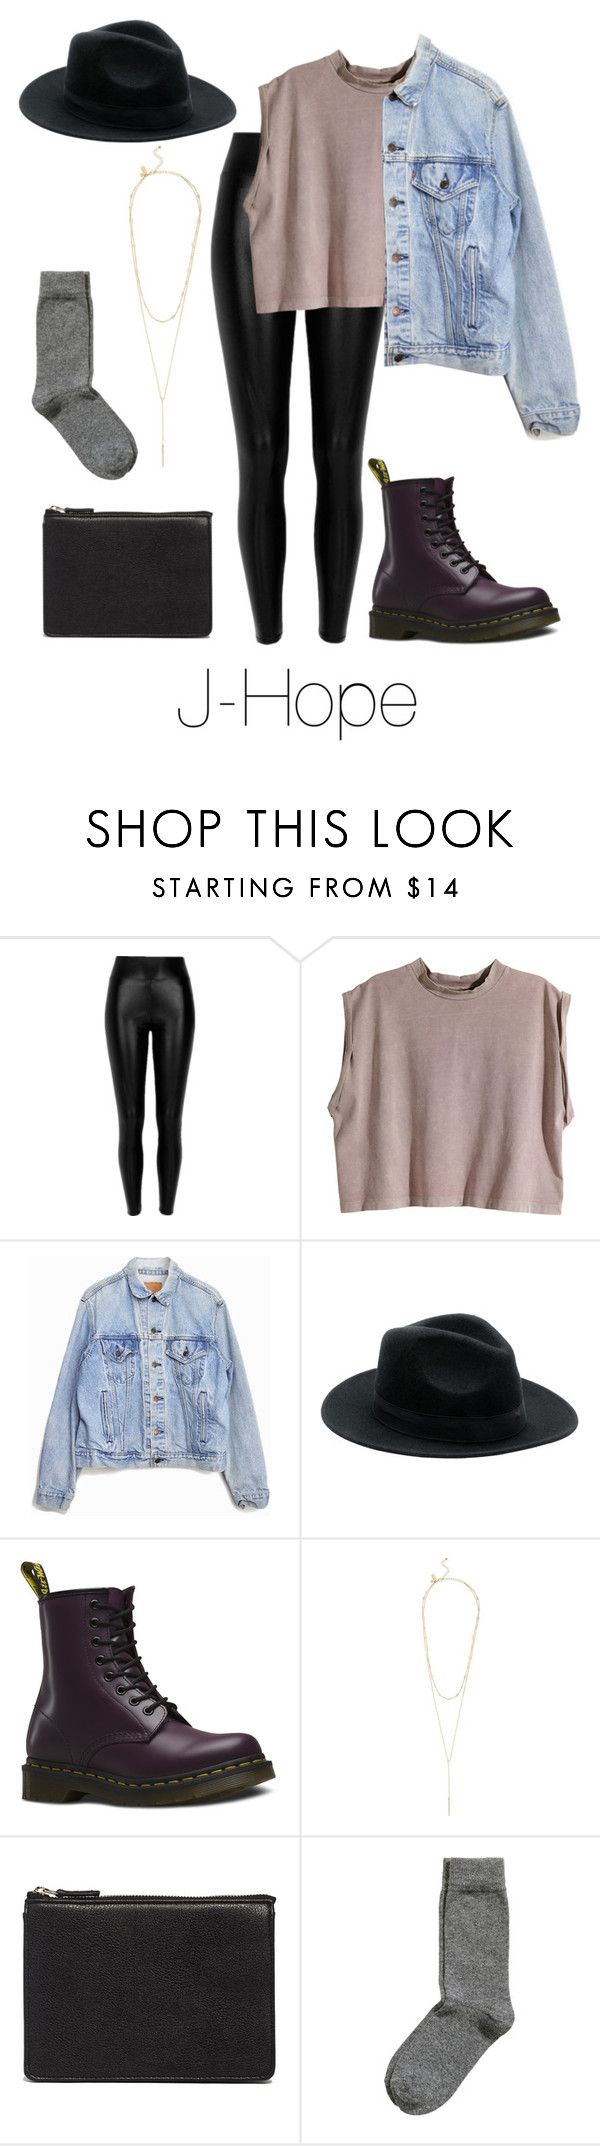 """""""J-Hope Inspired w/ Dr. Martens"""" by btsoutfits ❤ liked on Polyvore featuring H&M, Levi's, Dr. Martens, Kate Spade and ASOS"""